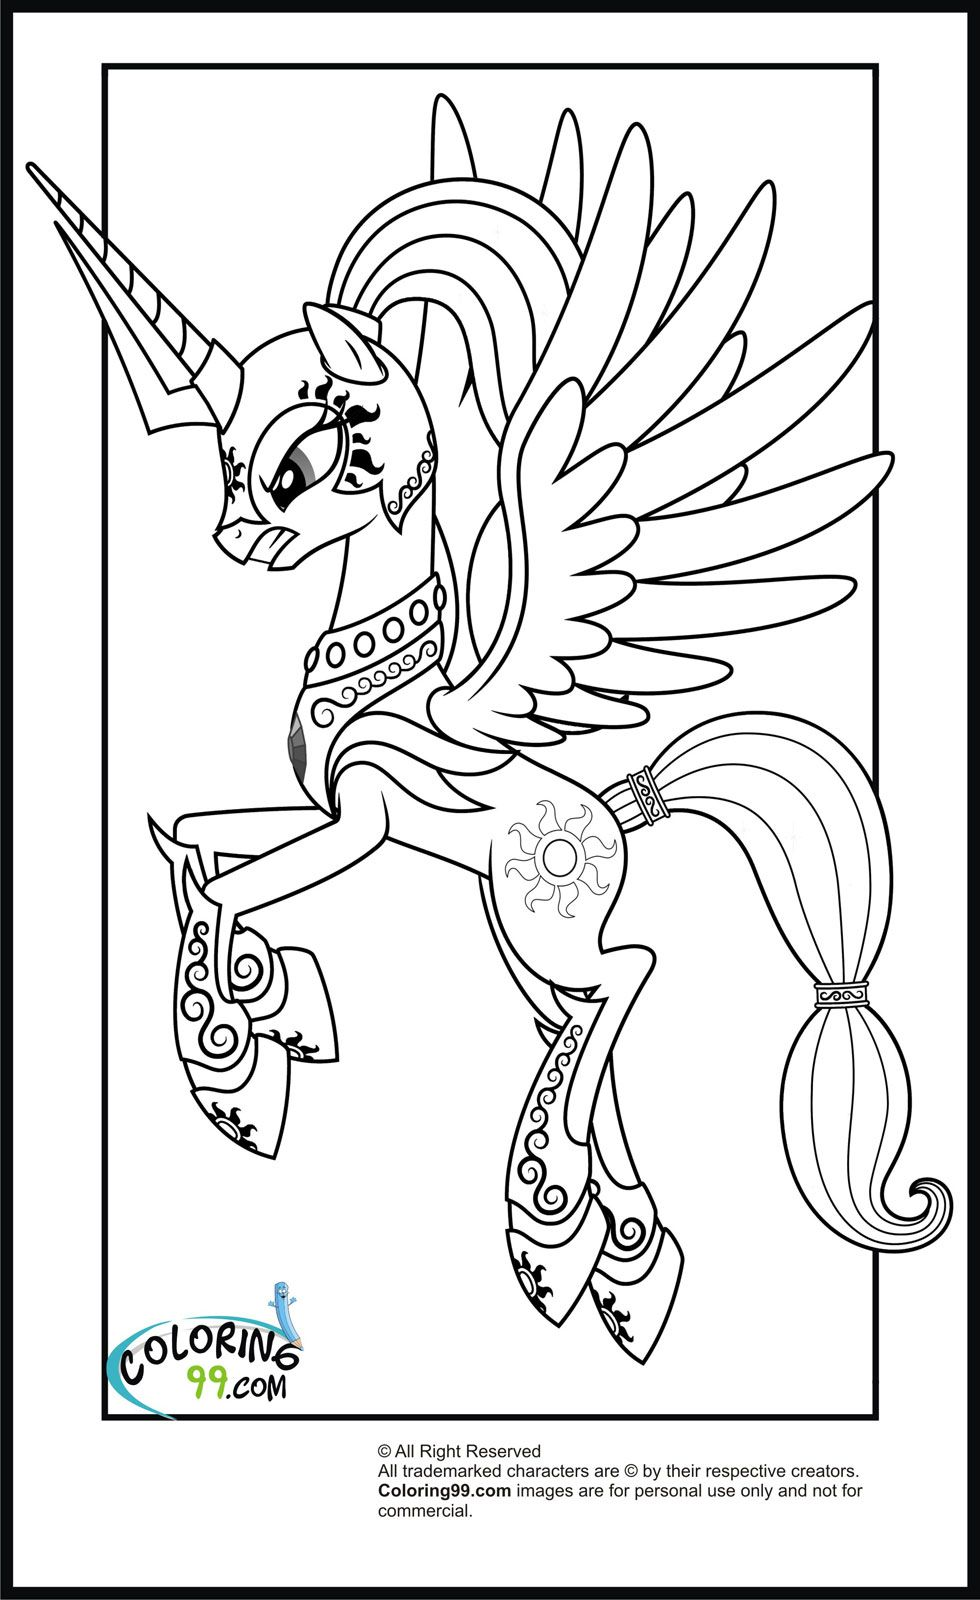 Ausmalbilder My Little Pony Pinkie Pie : My Little Pony Coloring Pages My Little Pony Daybreaker Coloring